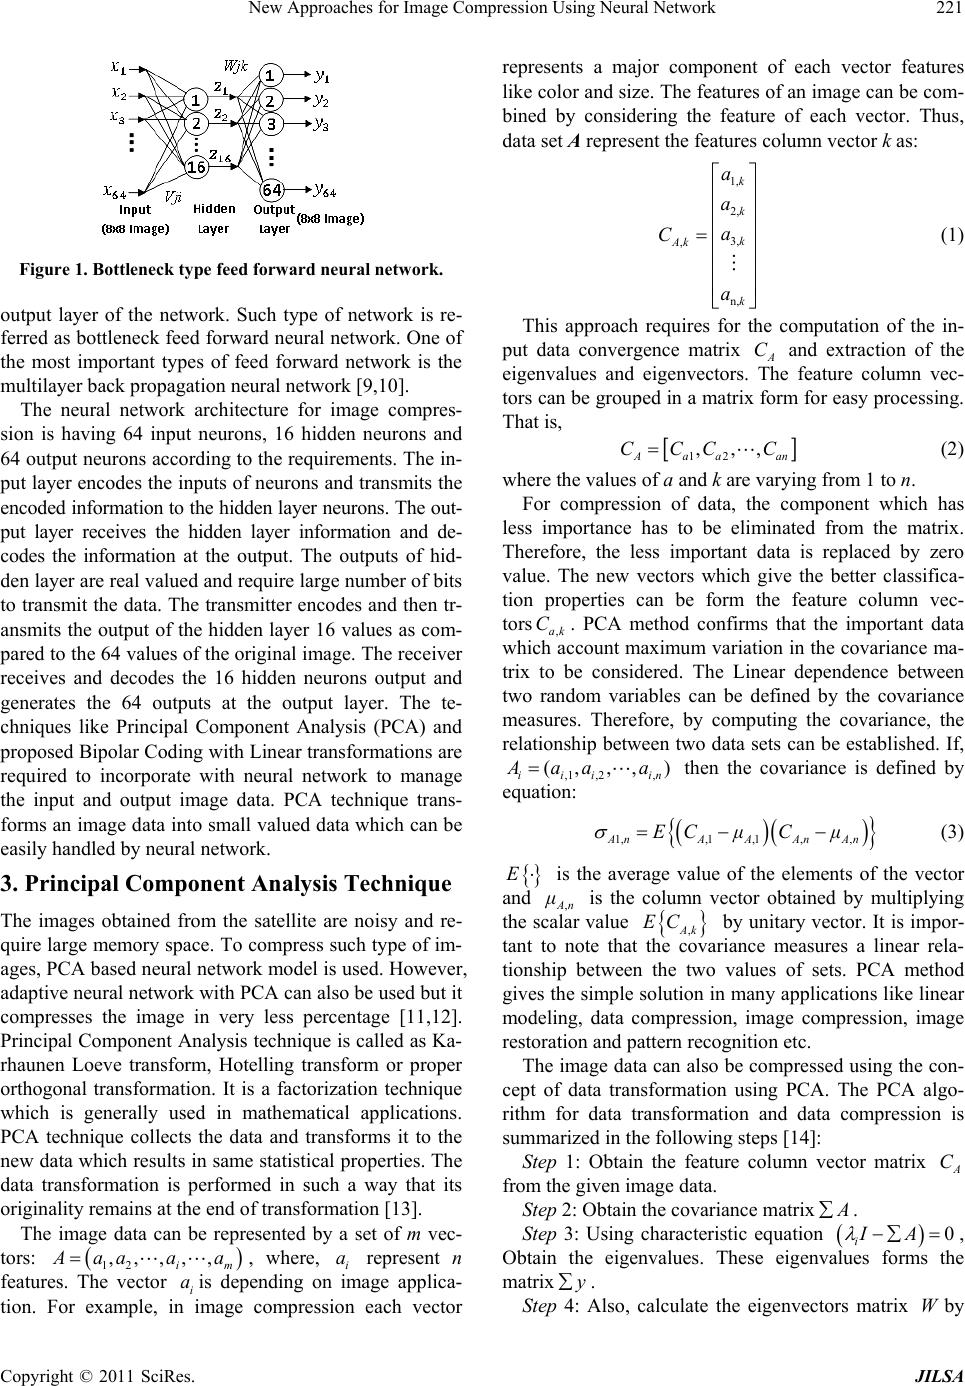 """thesis on image compression using neural network Neural networks lack centralized control in the classical sense, since all the interconnected processing elements change or """"adapt"""" simultaneously with the flow neural networks have been applied in different areas within the medical domain for clinical diagnosis (baxt:95) , image analysis and interpretation ( m i l ler:92."""